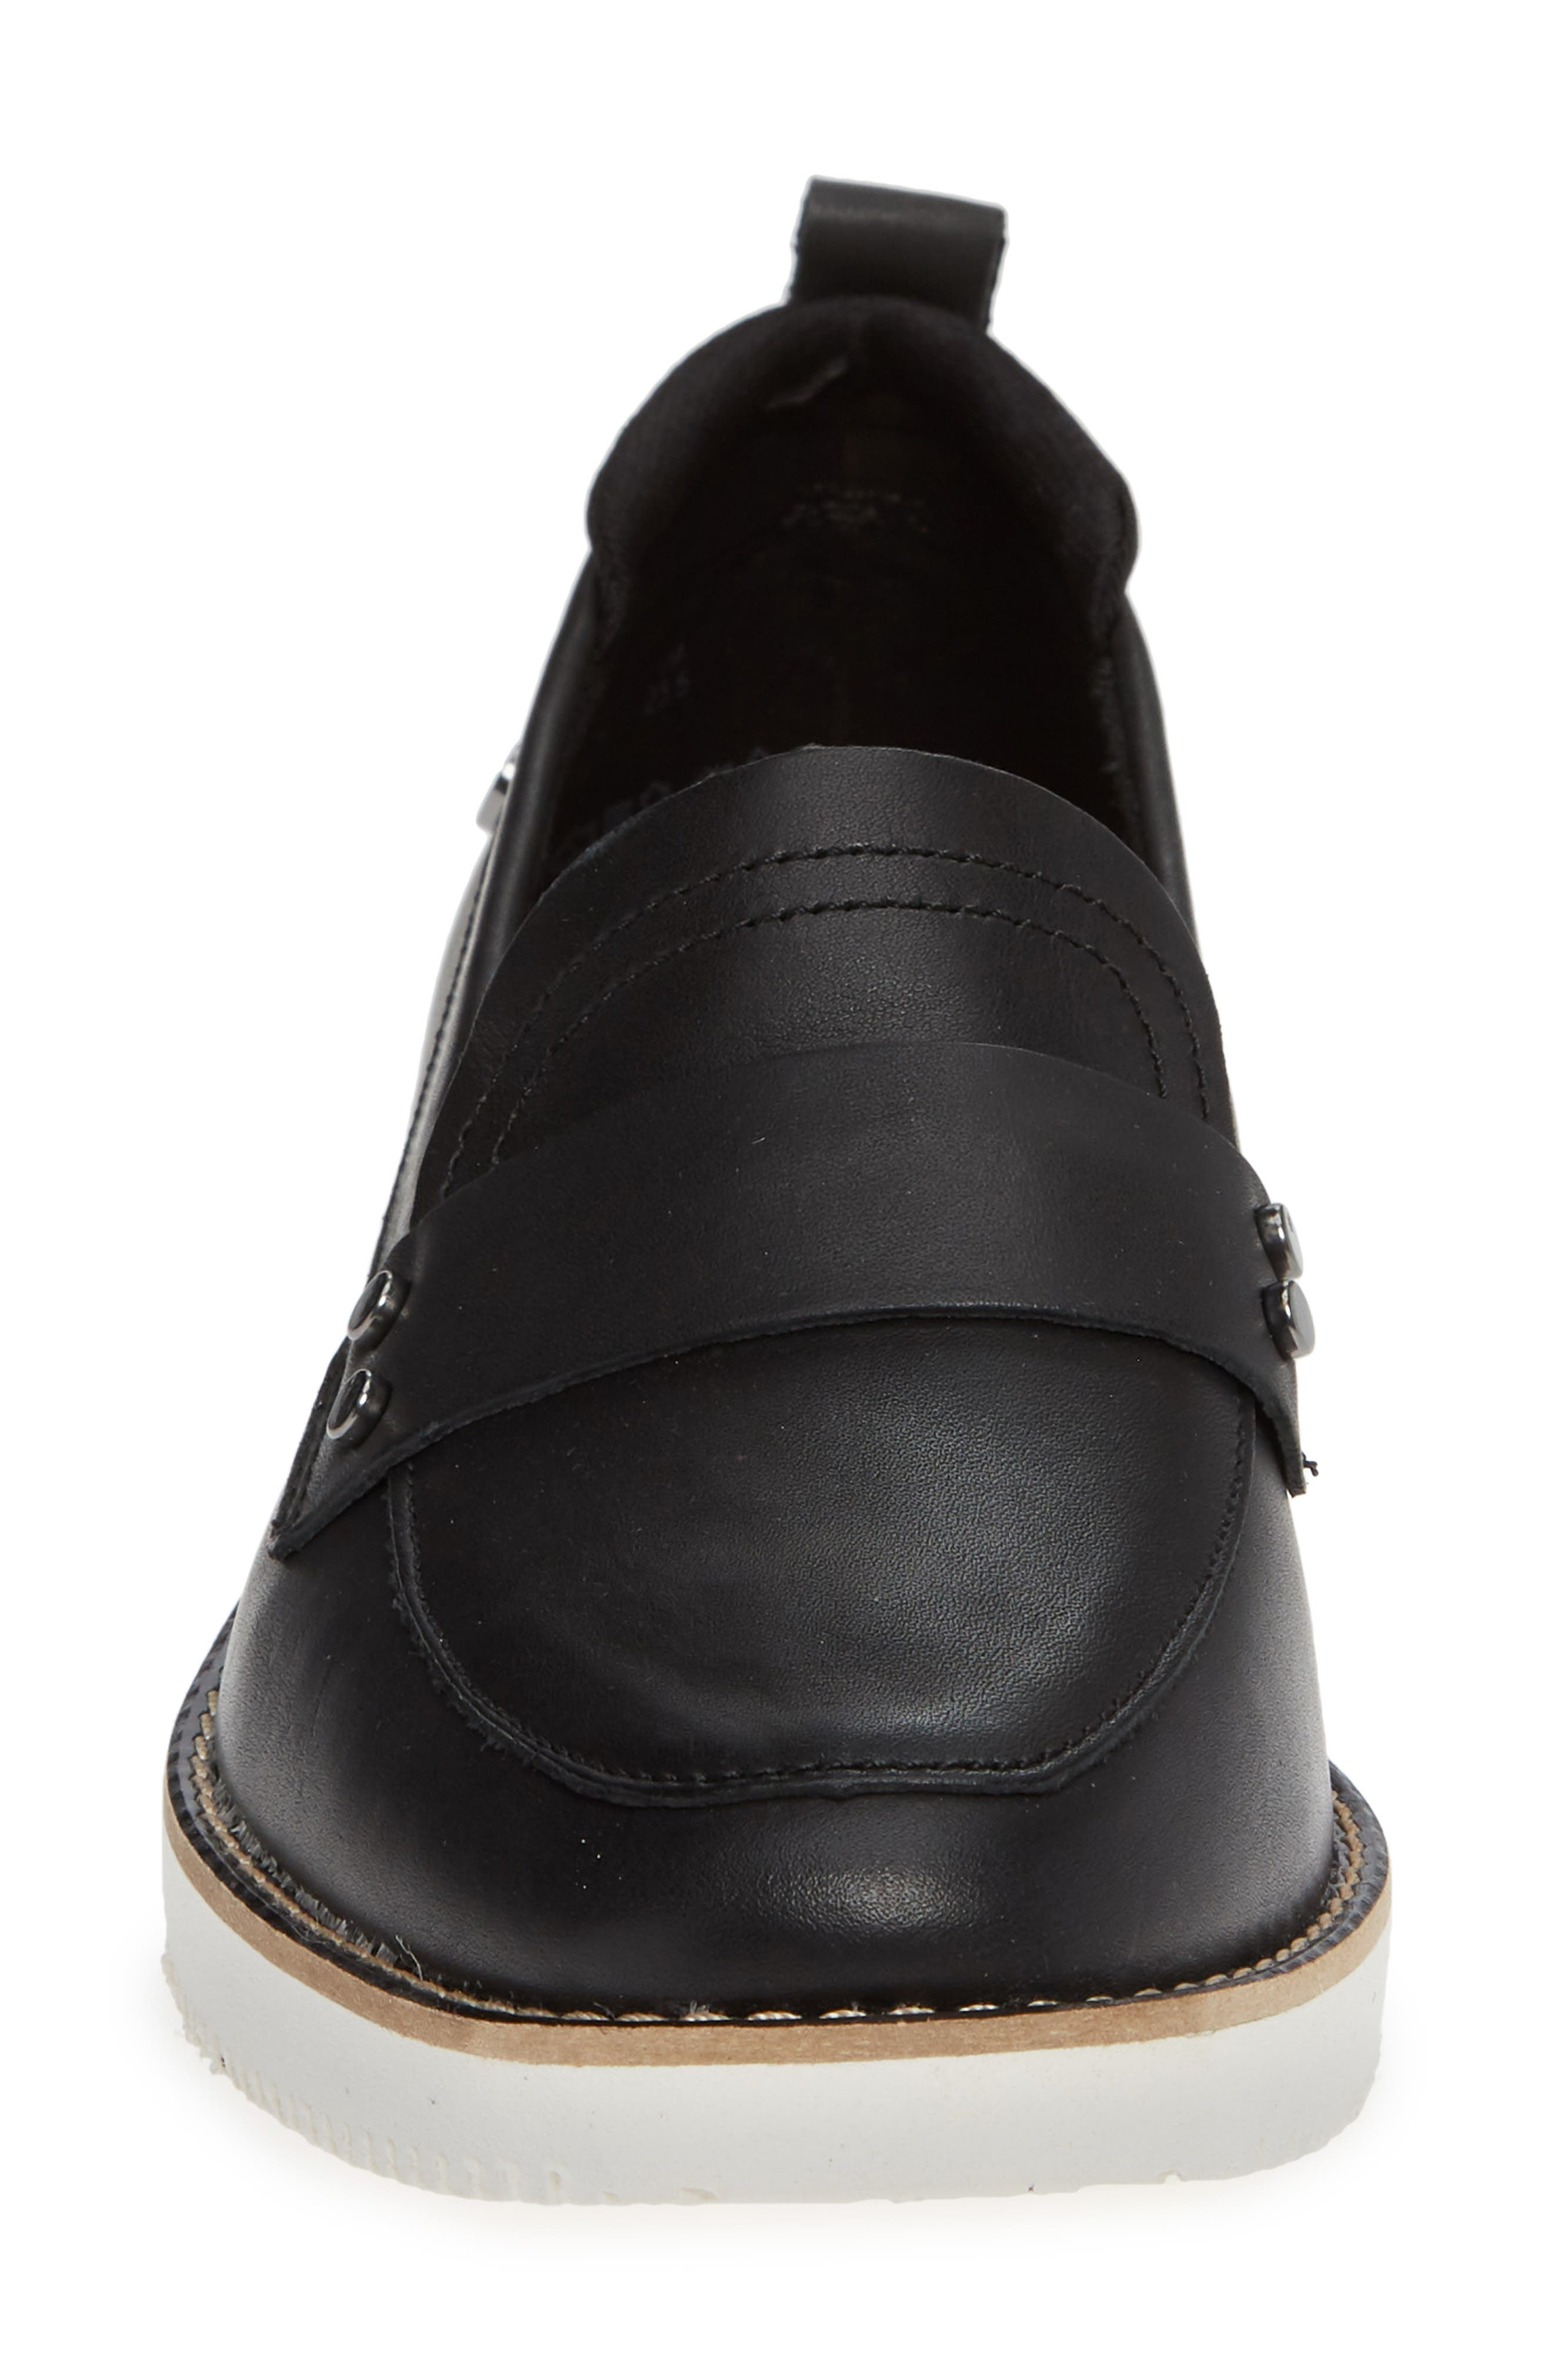 Chowchow Loafer,                             Alternate thumbnail 5, color,                             Black Leather